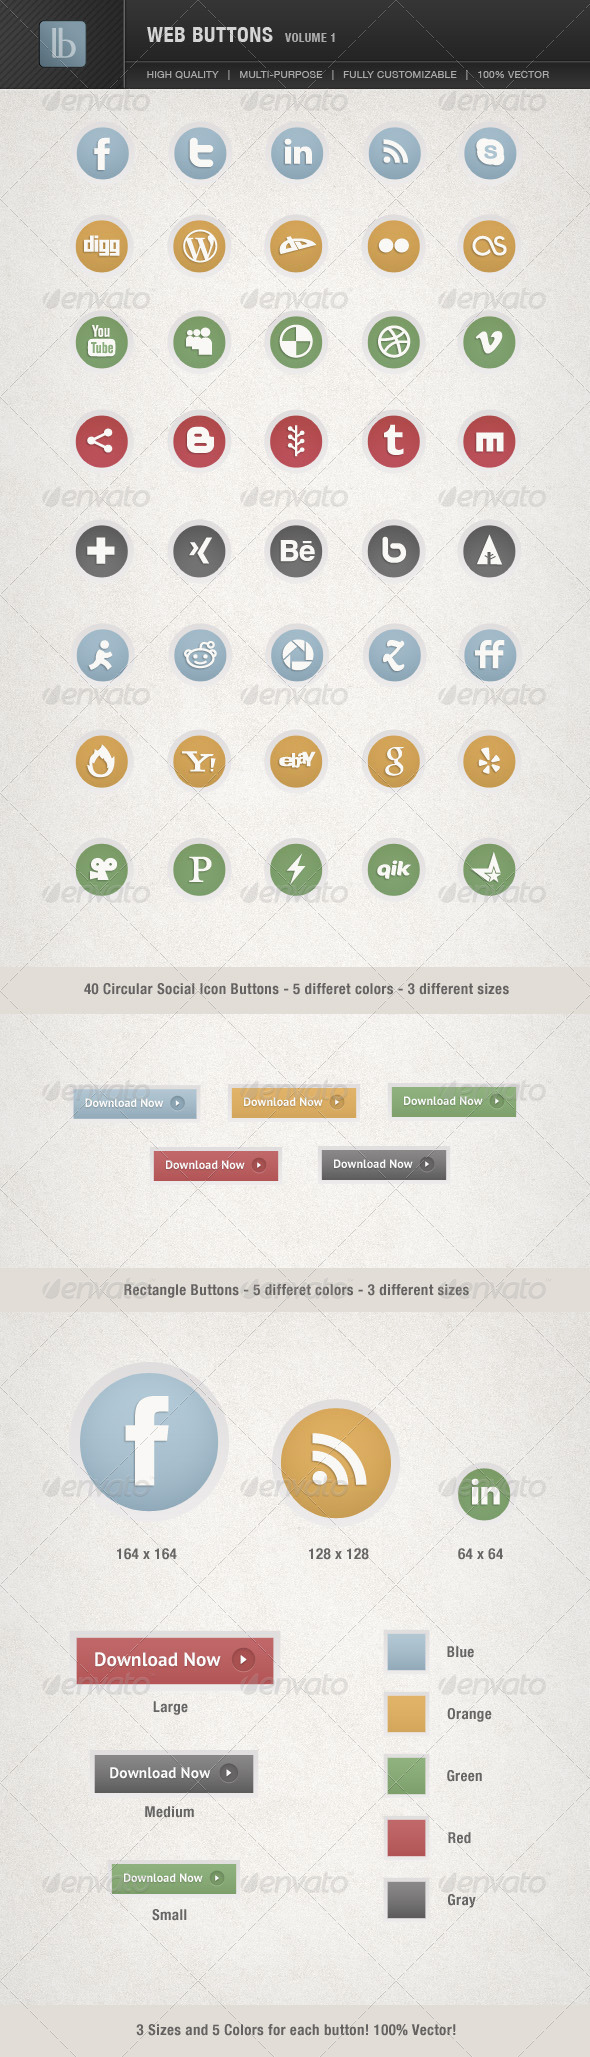 GraphicRiver Web Buttons Volume 1 1790629